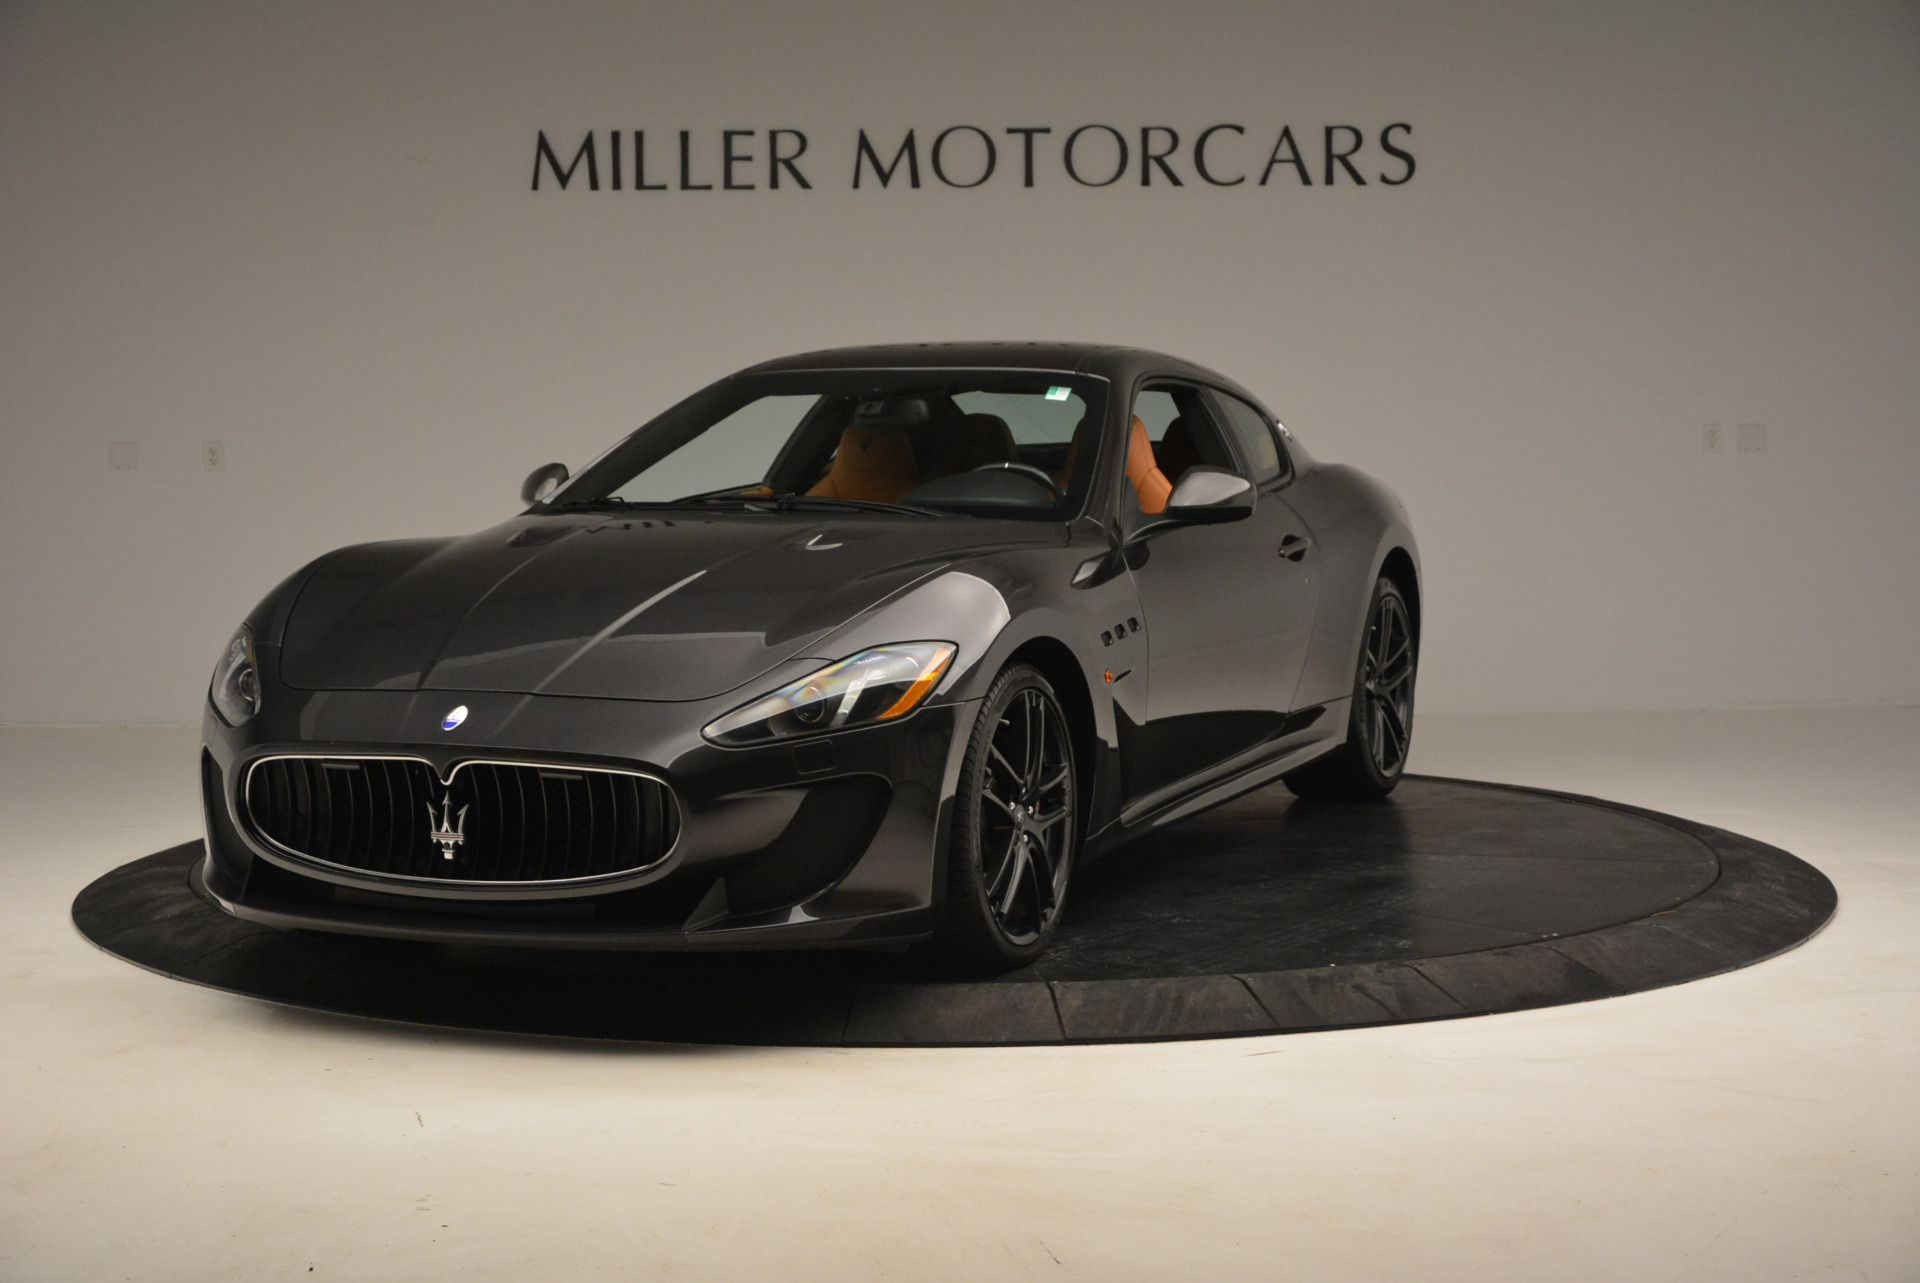 Used 2013 Maserati GranTurismo MC for sale Sold at Bugatti of Greenwich in Greenwich CT 06830 1